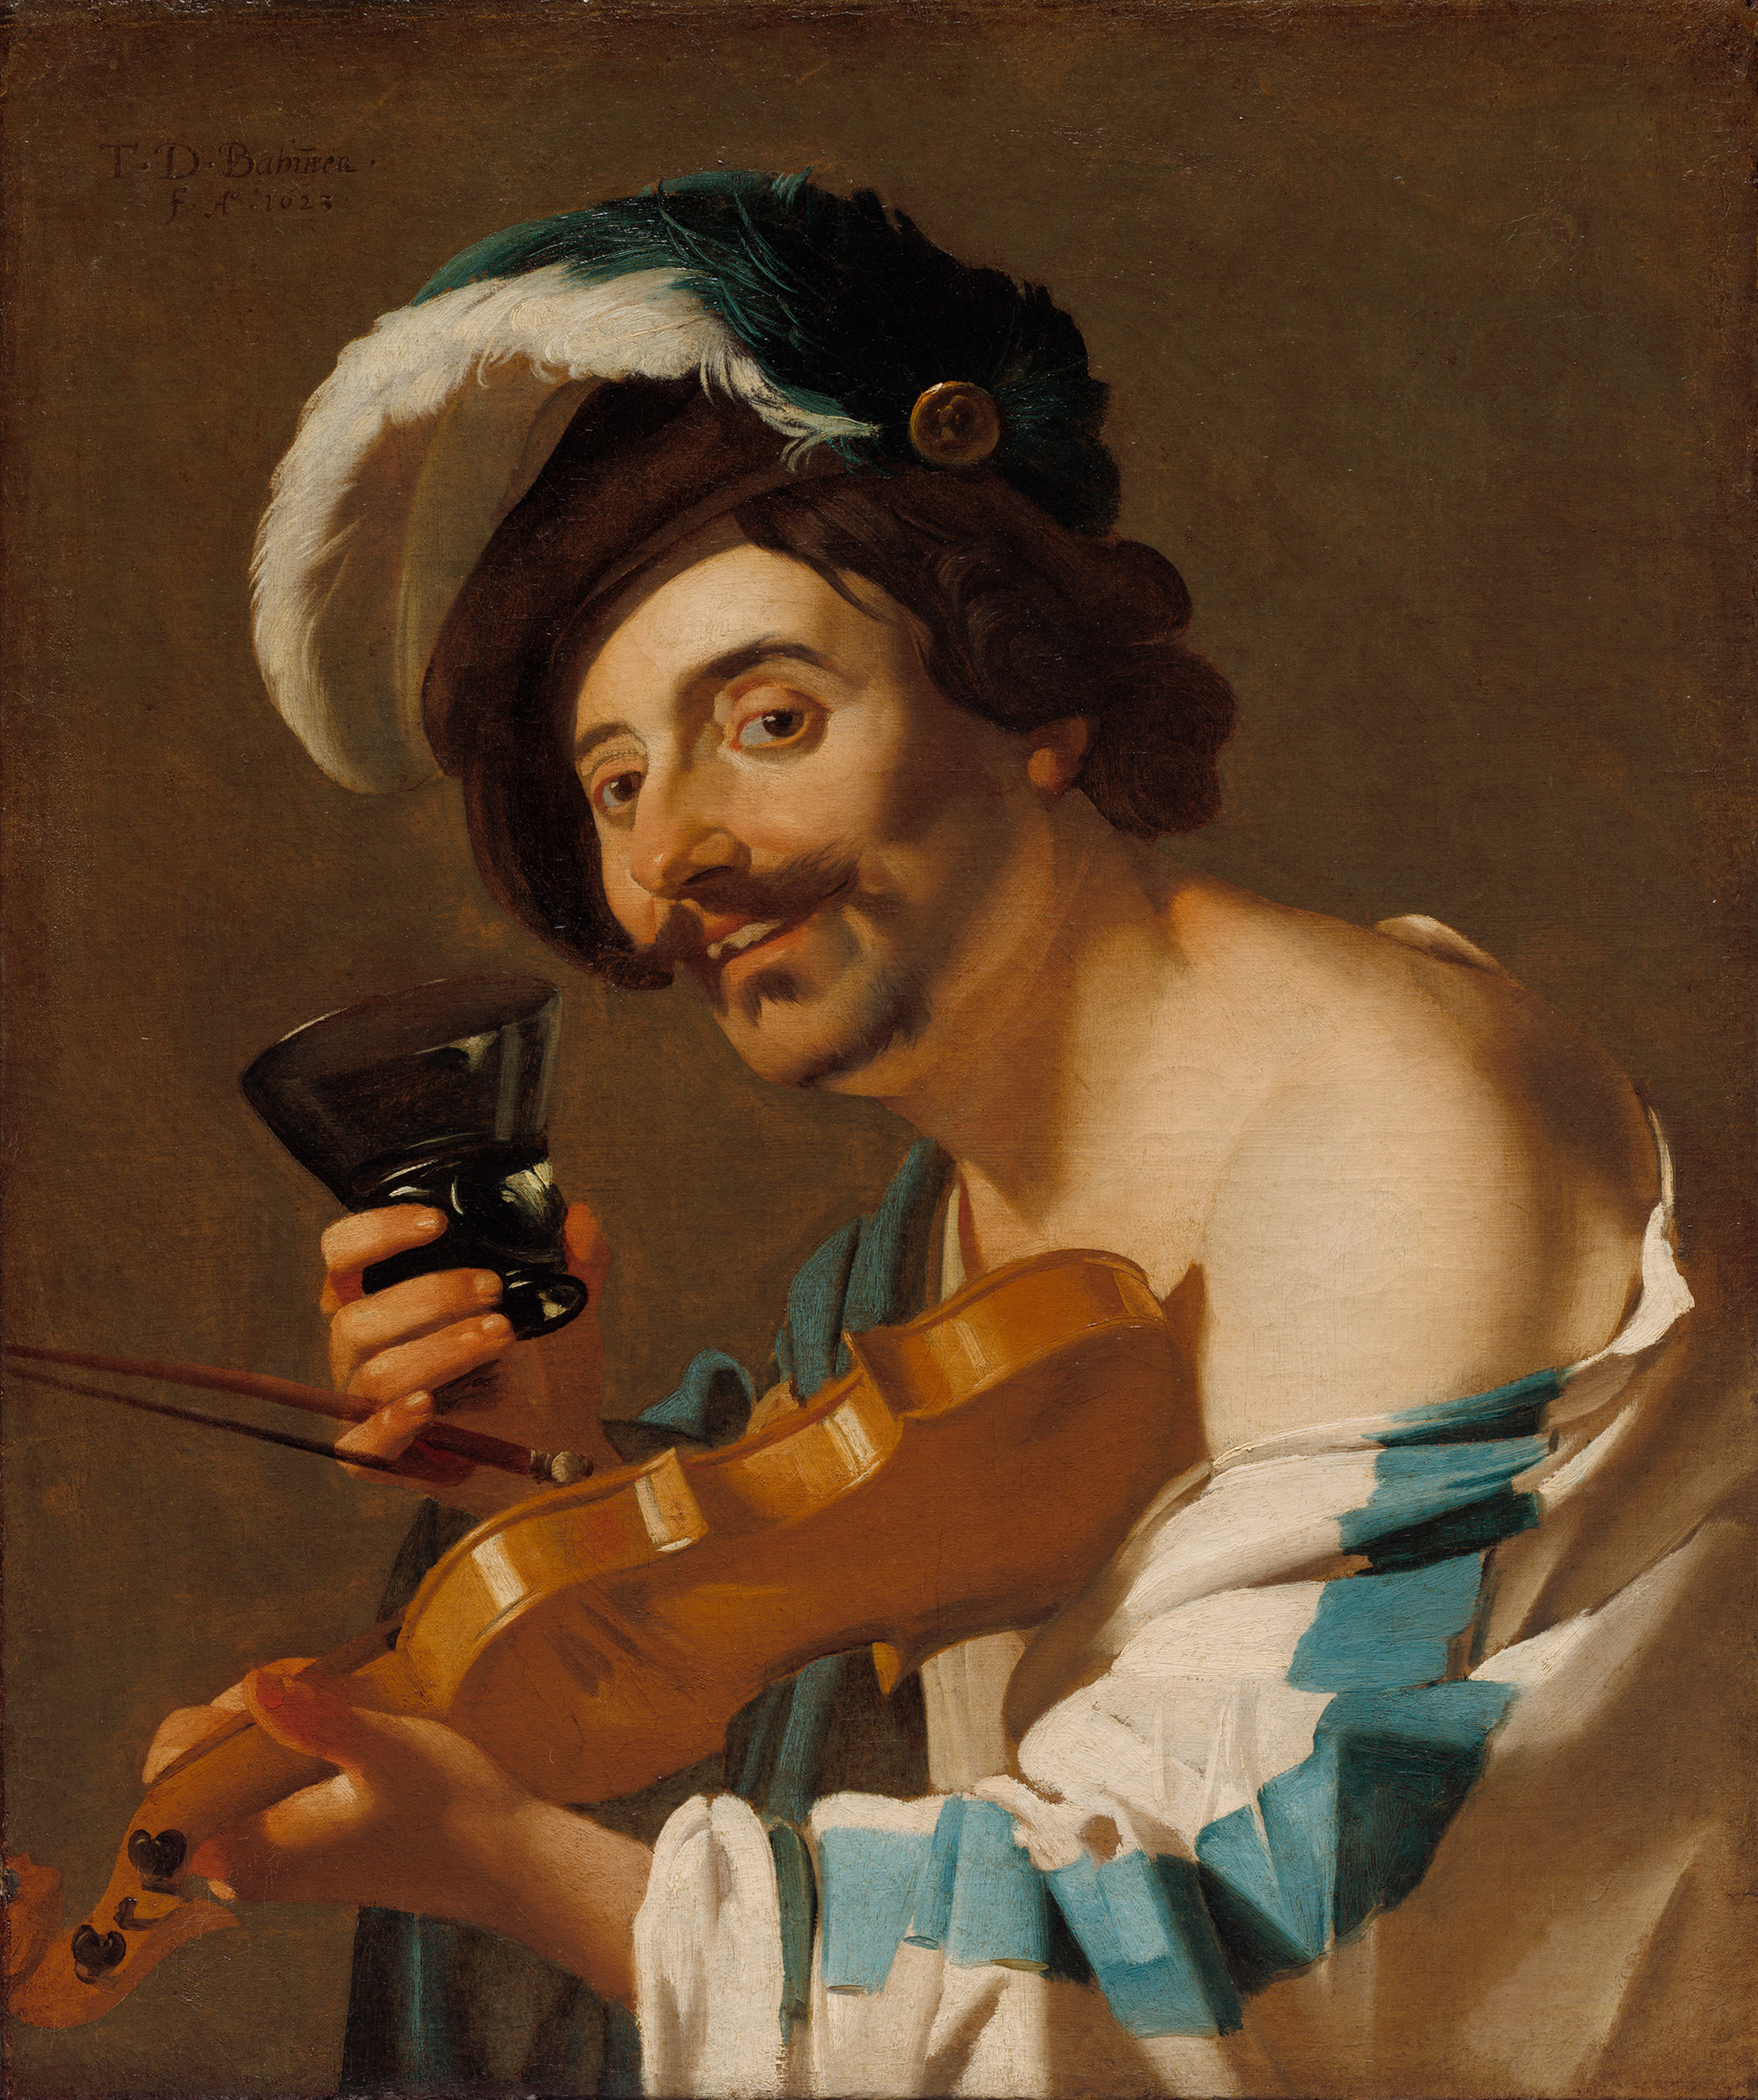 The Violin Player by Dirck van Baburen courtesy of the Cleveland Museum of Art